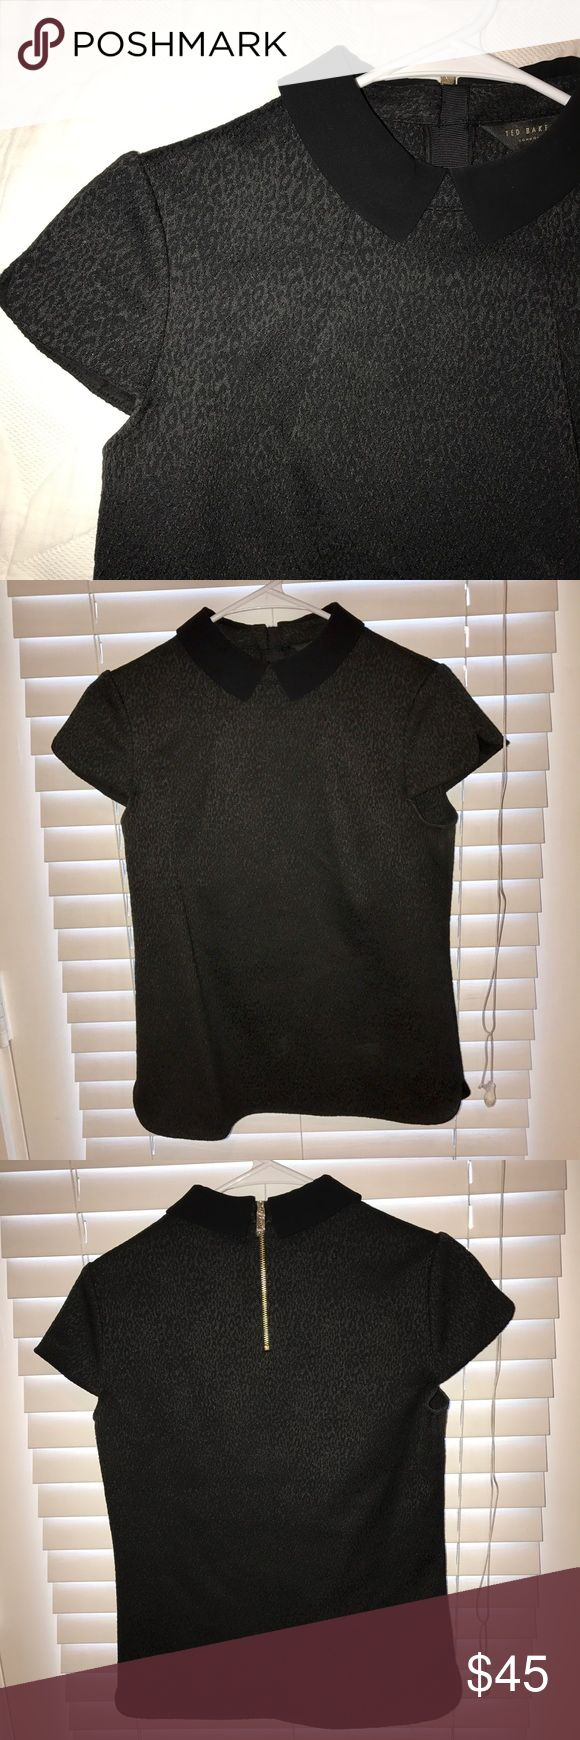 Ted Baker Blouse Ted Baker blouse, black, worn once. Size 1 (small). Ted Baker Tops Blouses